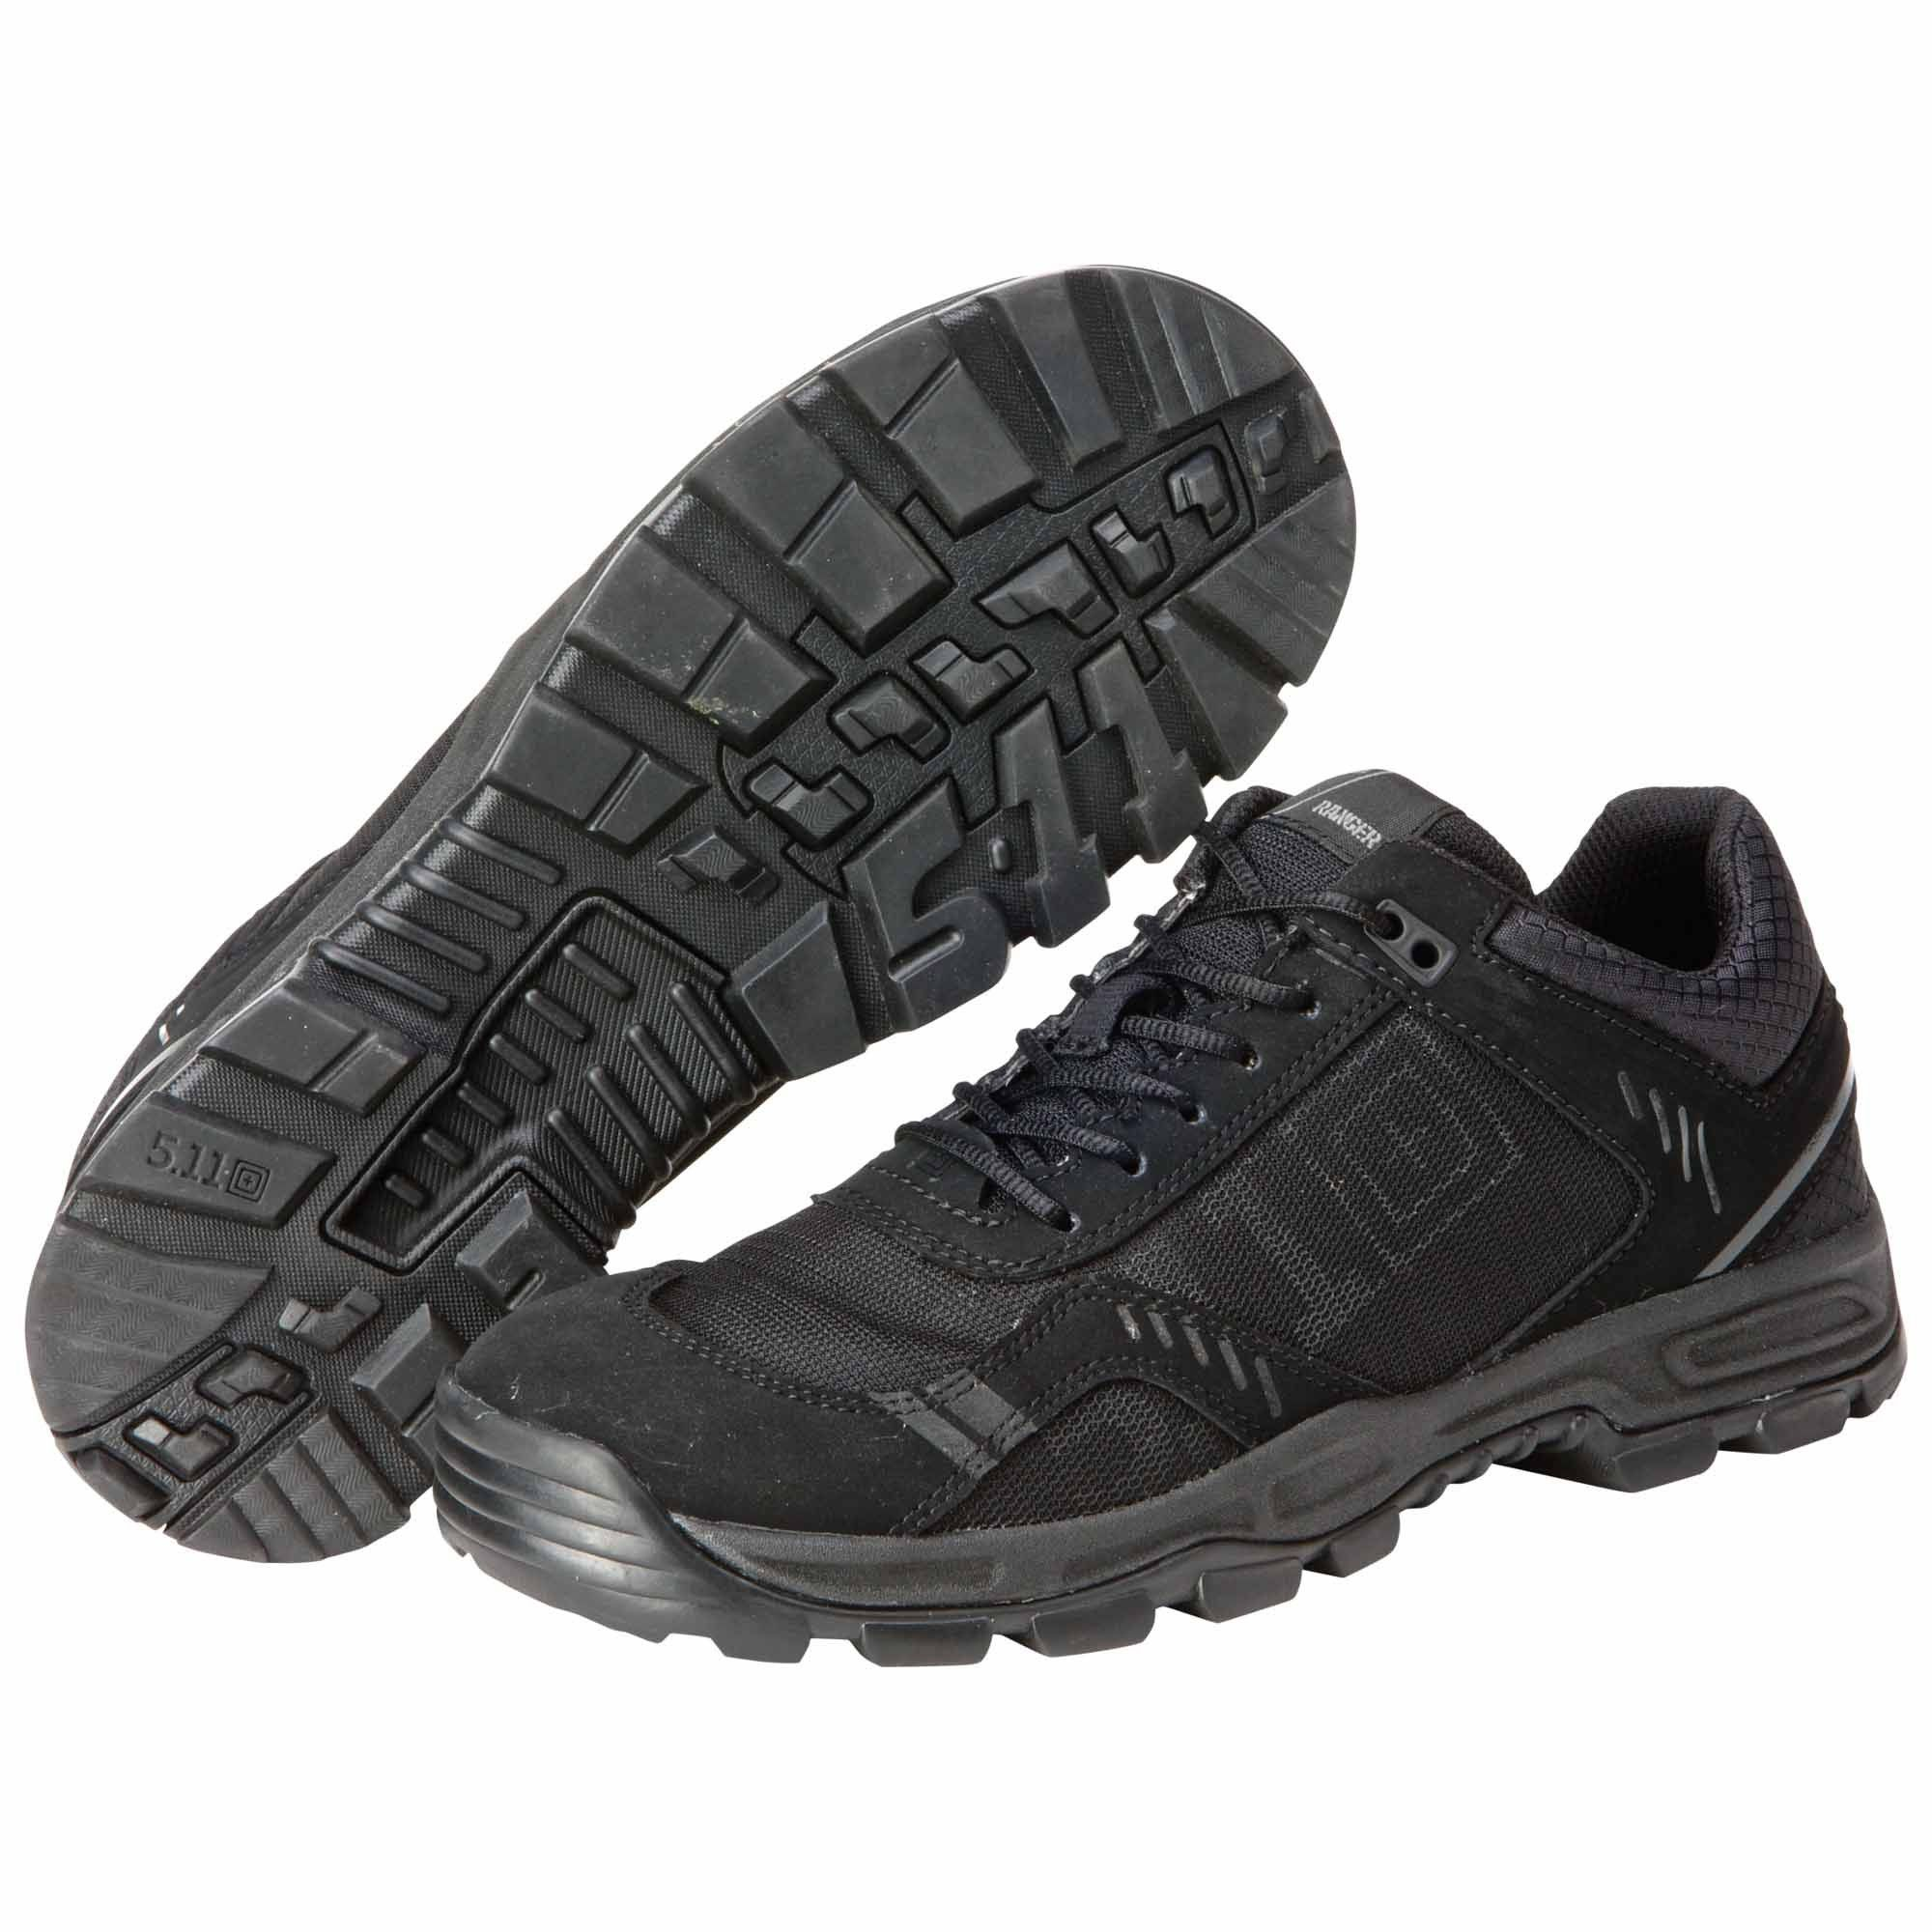 tactical shoes from 511tactical.com This site jas sone good looking gear,  but even